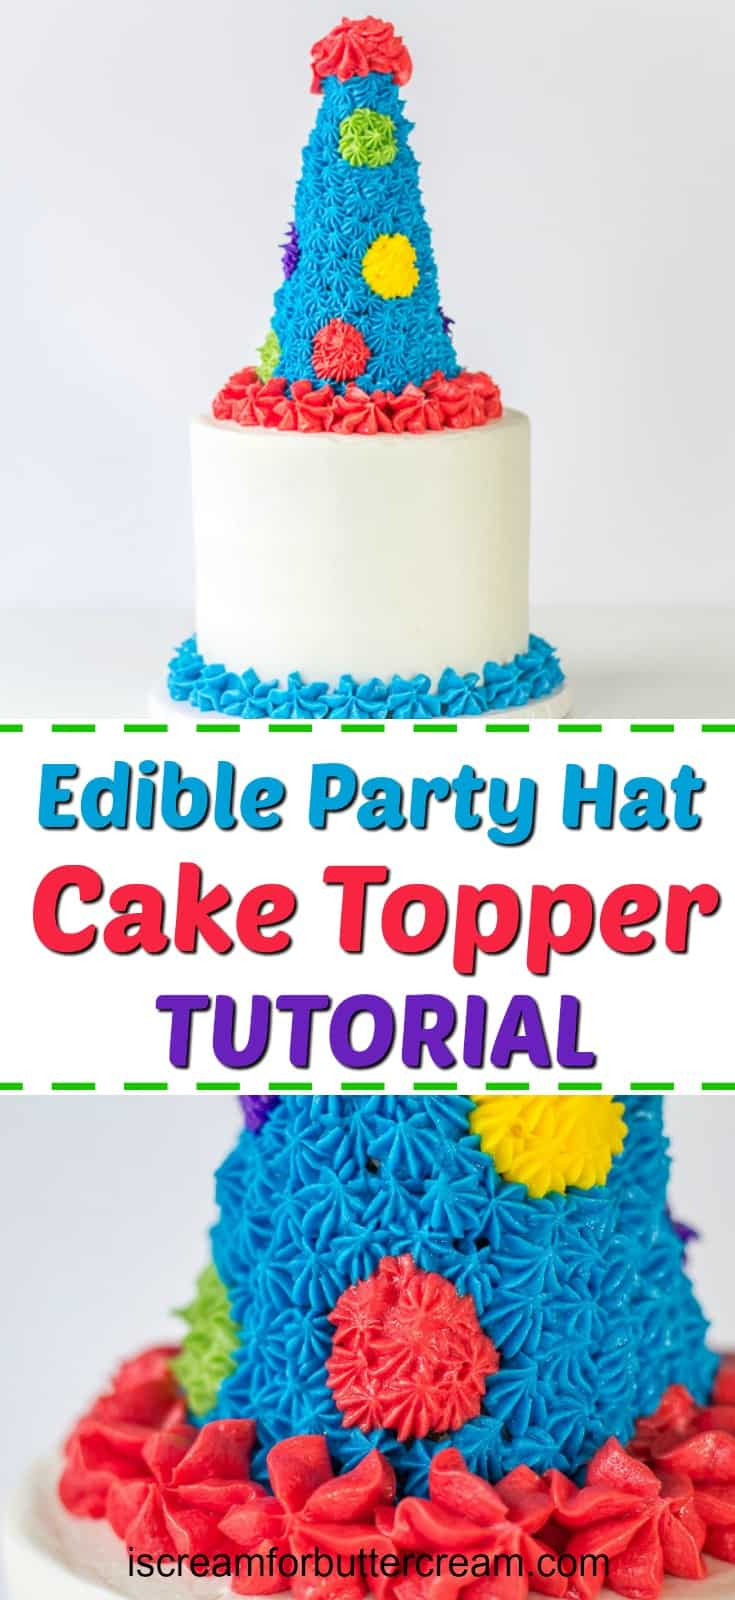 Edible Party Hat Cake Topper Tutorial Pinterest Graphic